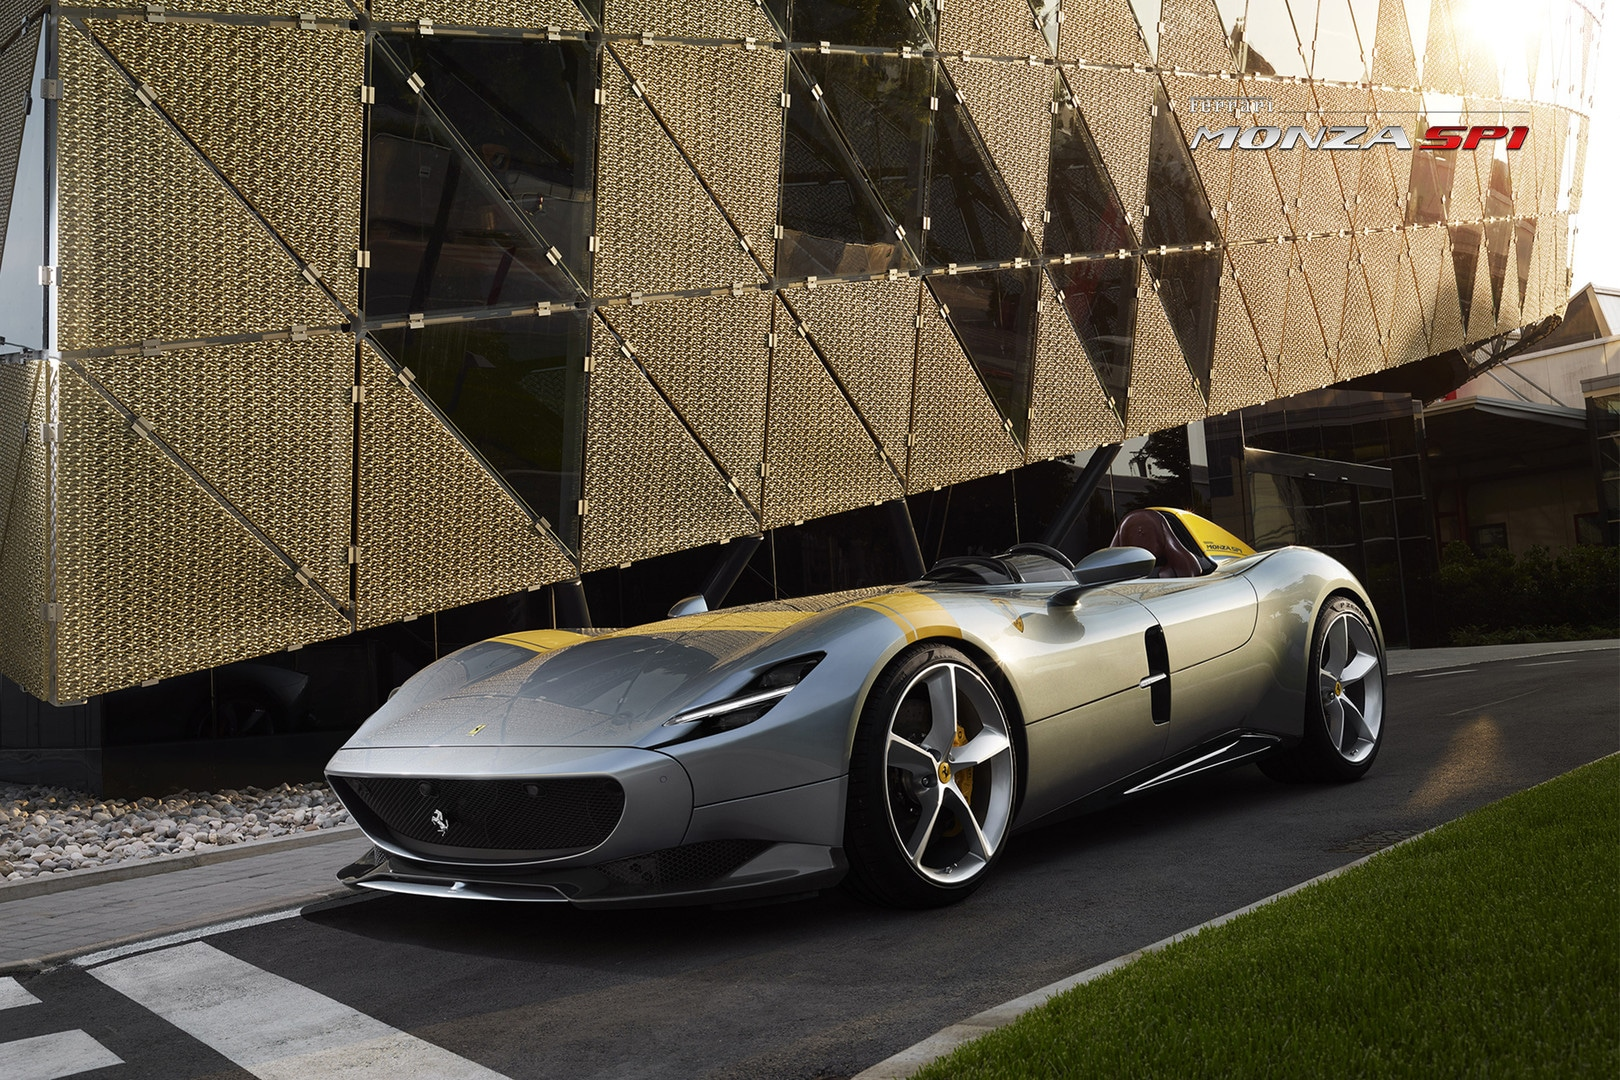 El Ferrari Monza SP1 gana el iF Gold Award